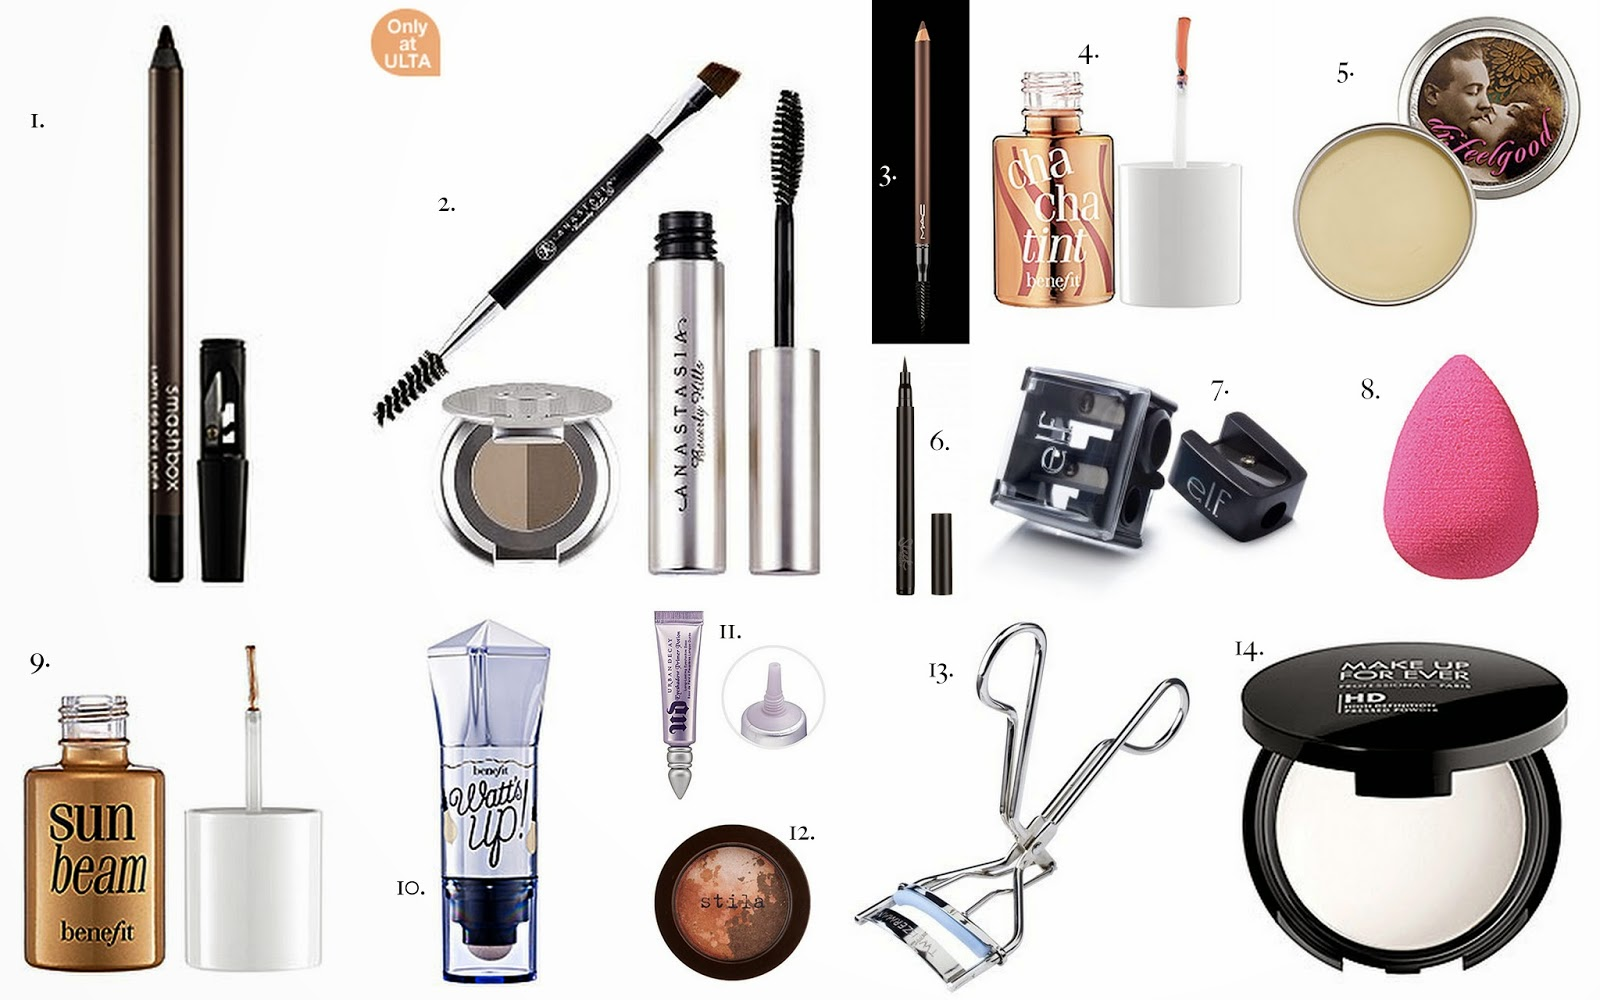 http://funkidos.com/fashion-style/makeup-styles/how-to-put-together-a-makeup-kit